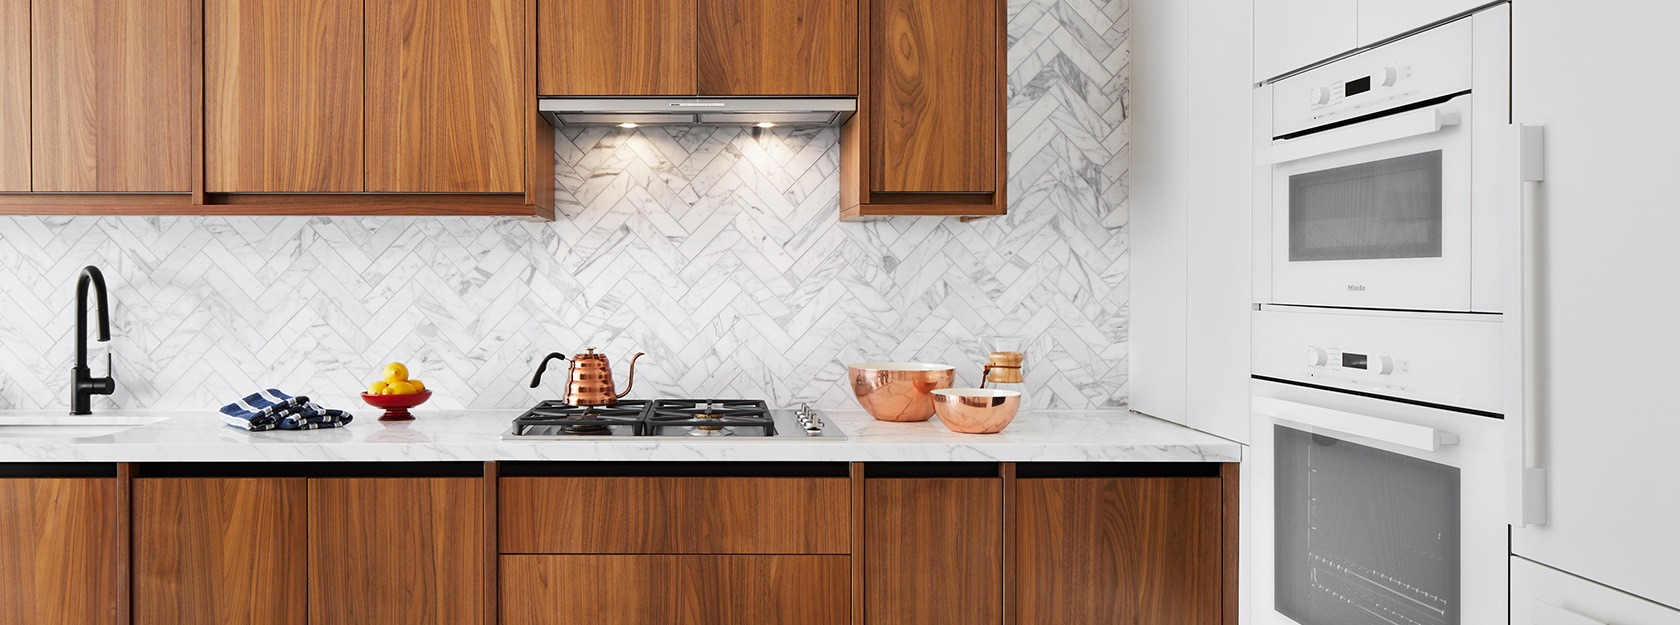 The Greenpoint kitchen with ample cabinet space